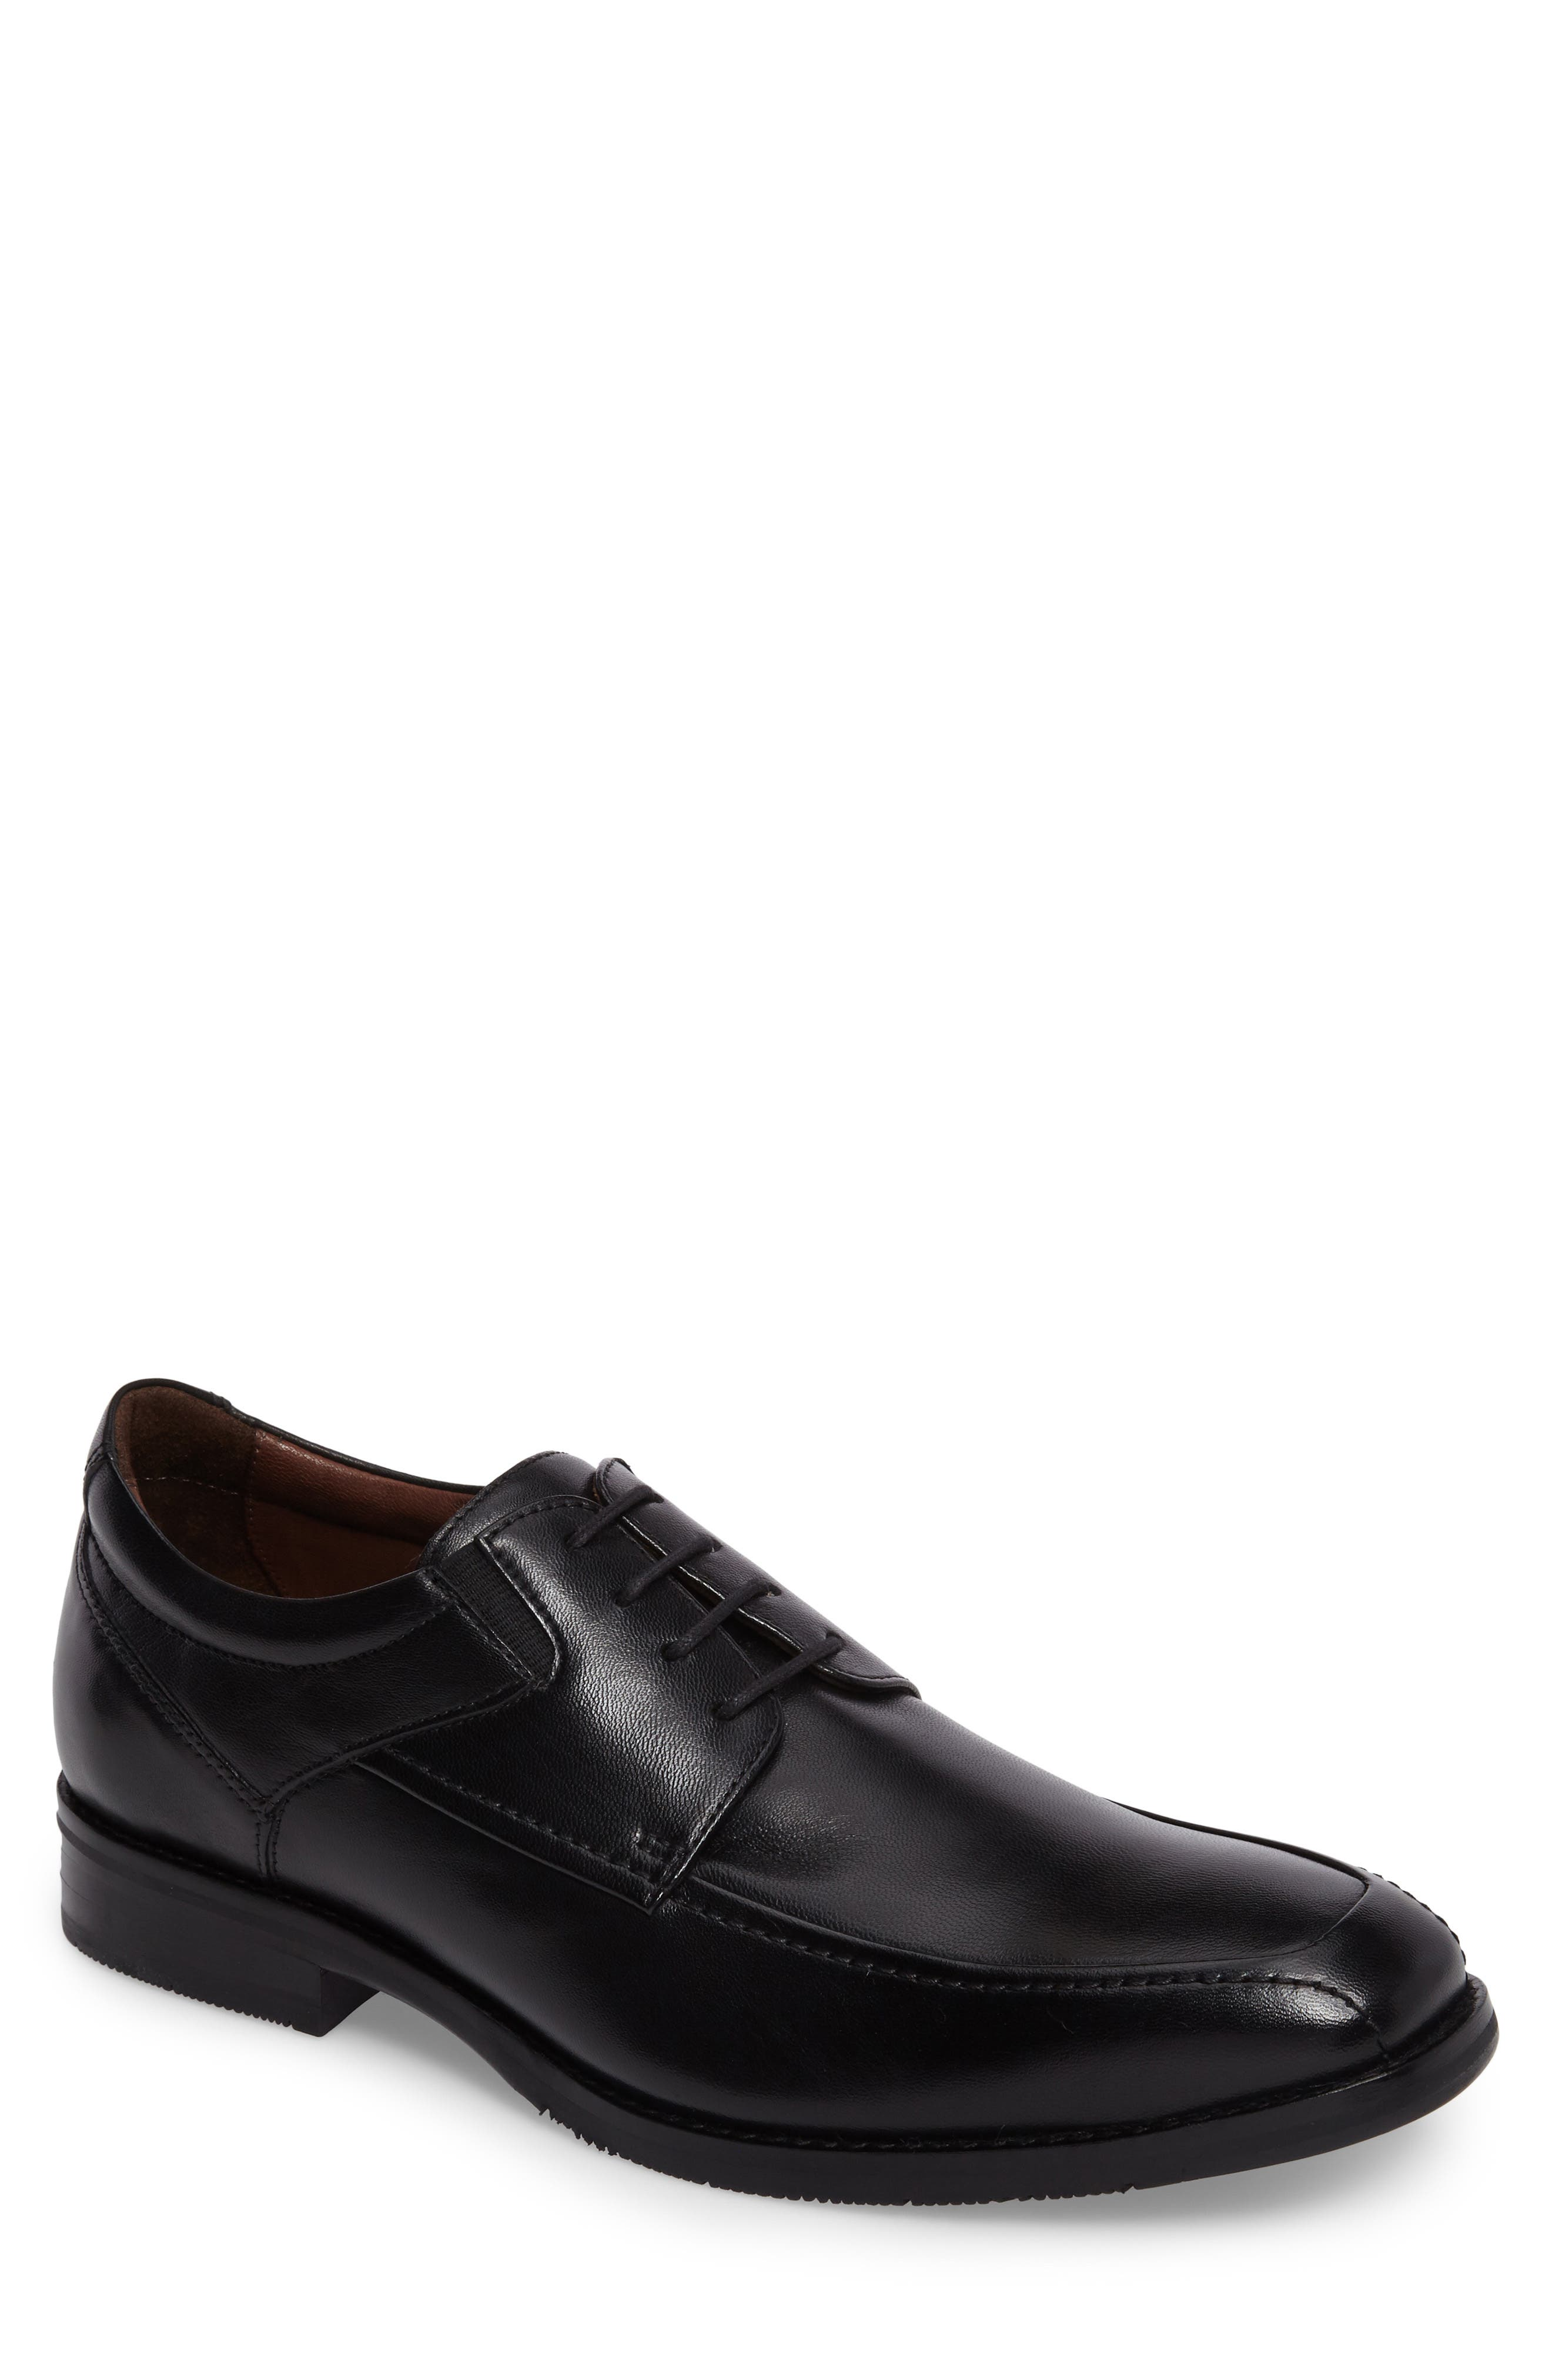 JOHNSTON & MURPHY, Apron Toe Derby, Main thumbnail 1, color, BLACK